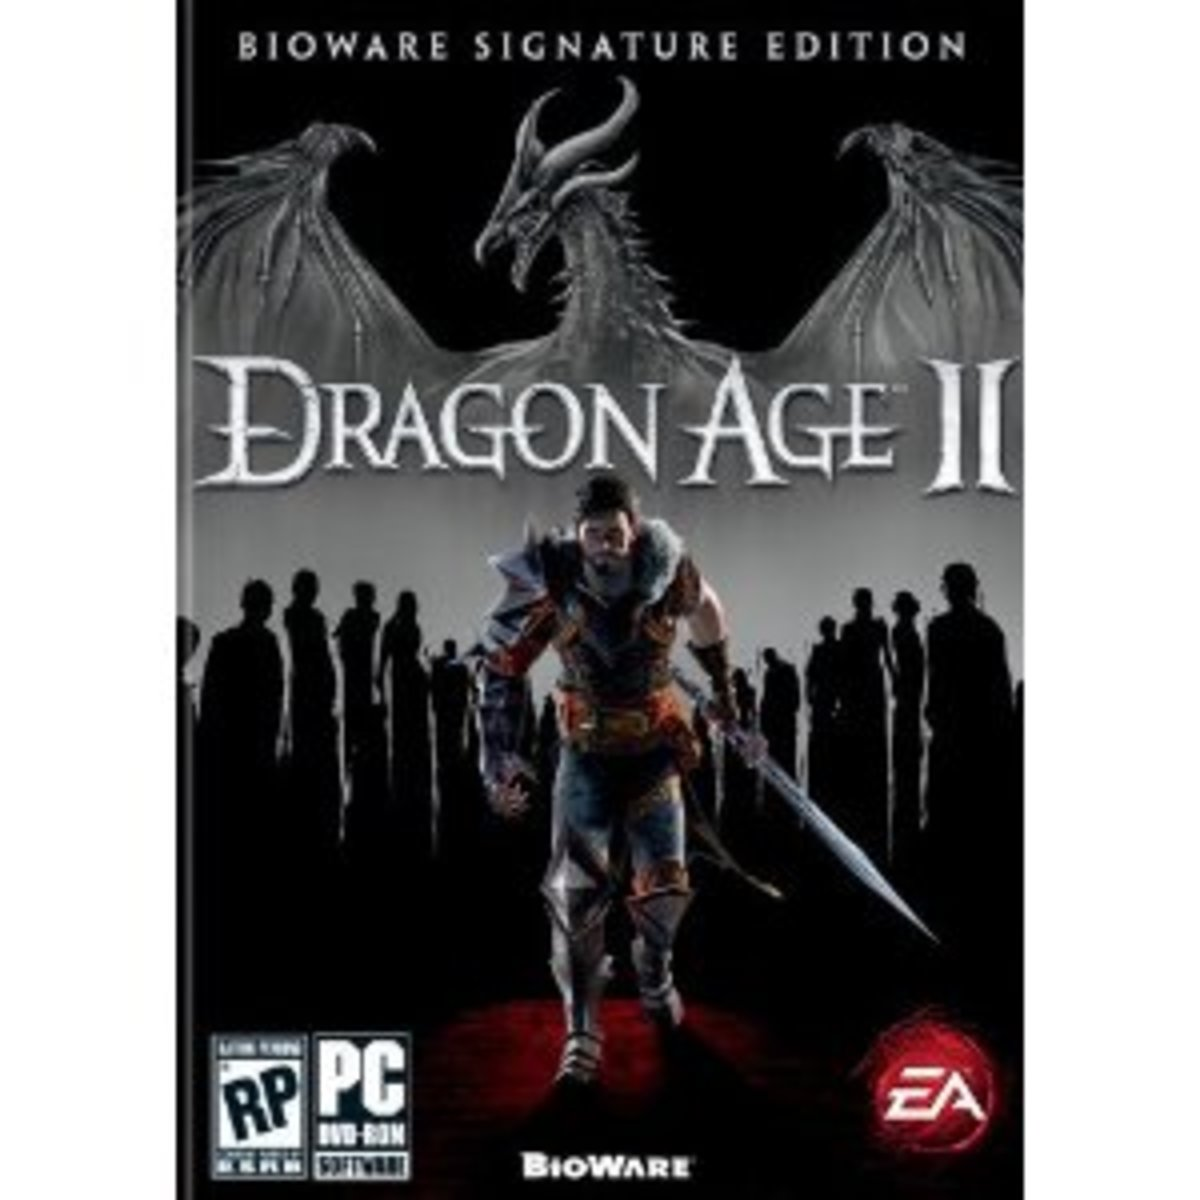 Dragon Age 2 cheats, hints and tips & how to enable the Dragon Age 2 cheat console for the PC